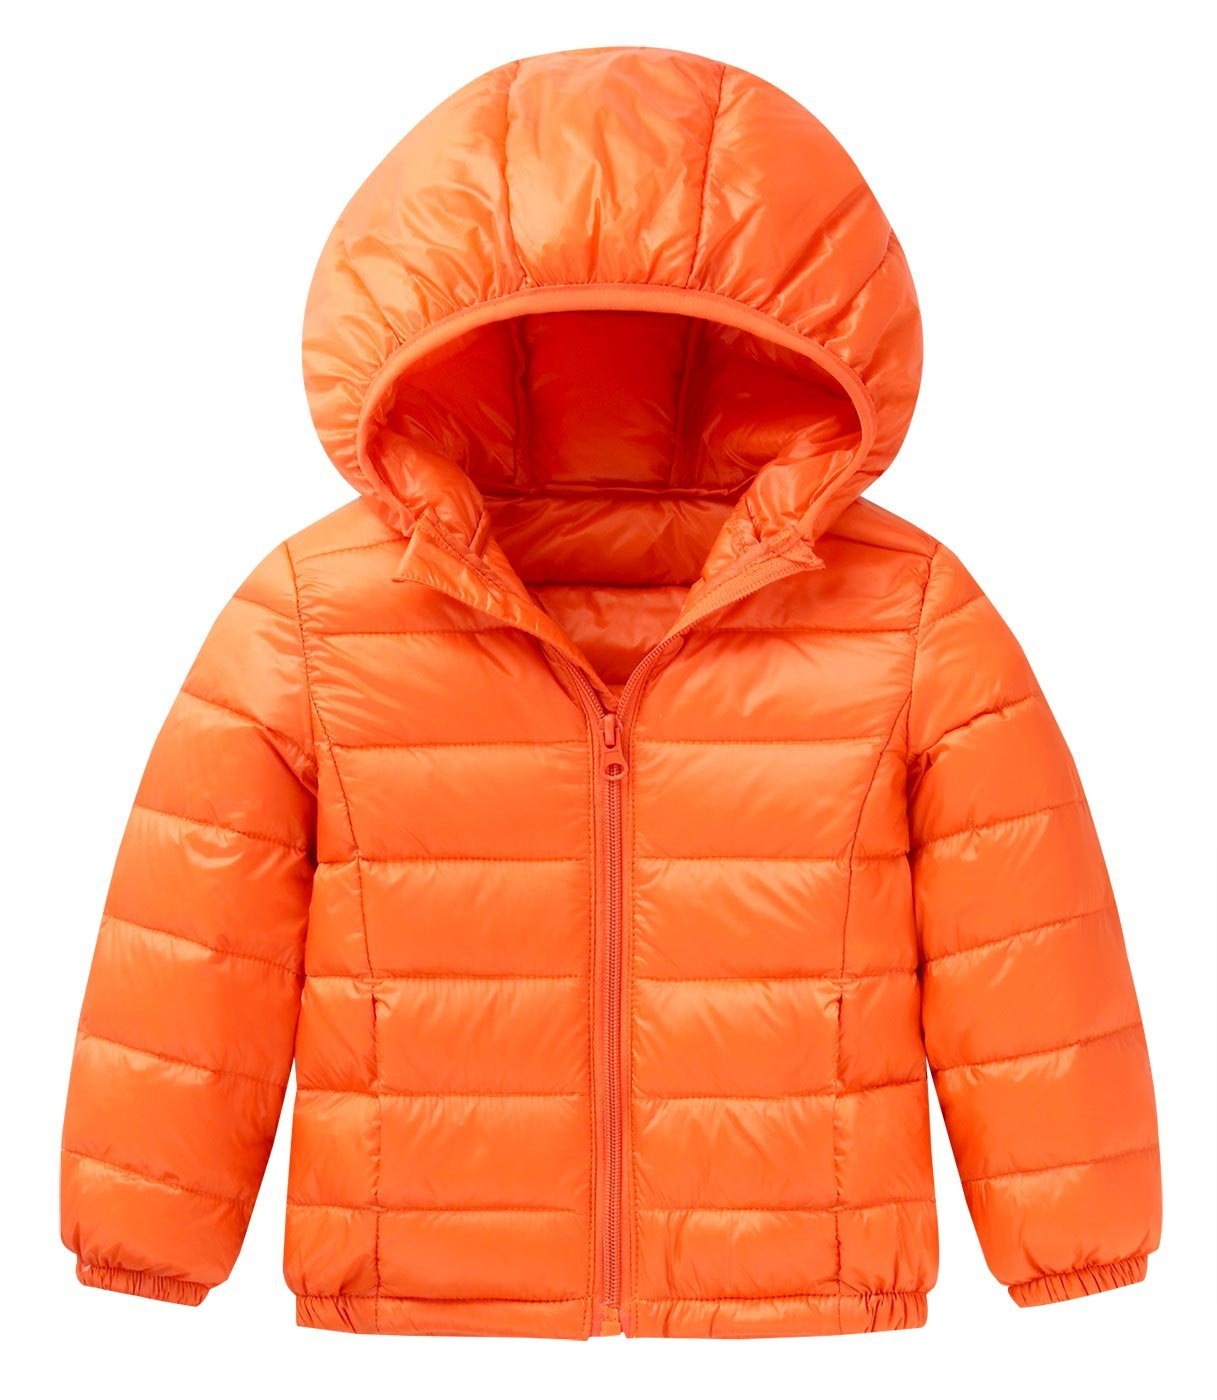 Happy Cherry Baby Boys Girls Hooded Packable Ultra Light Weight Short Down Jacket Orange Size 140cm